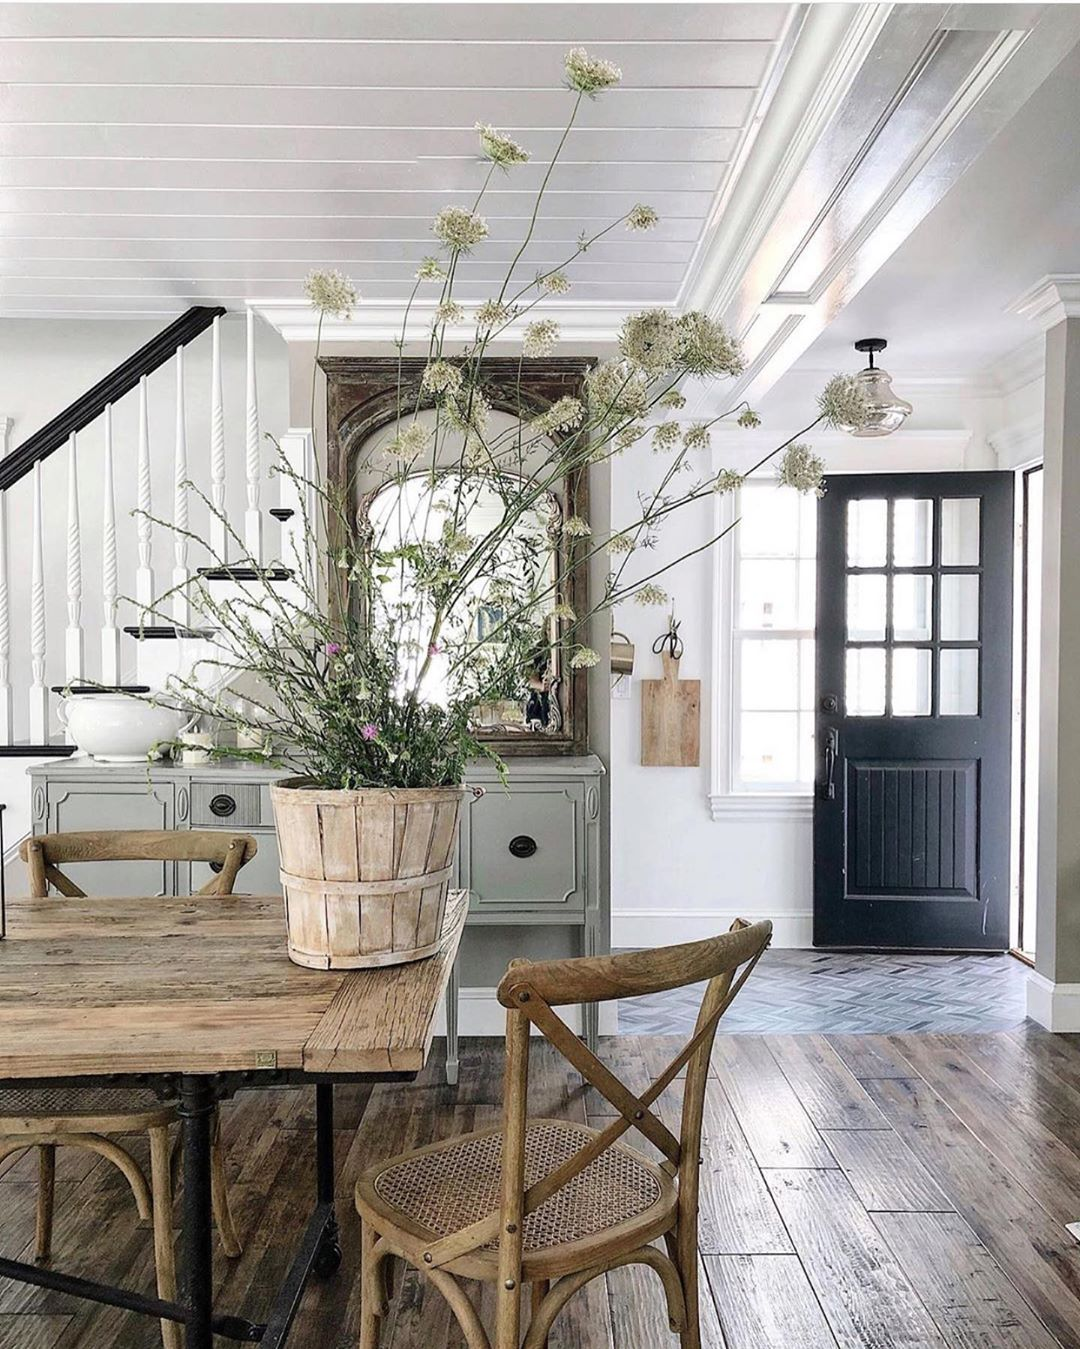 Ashley Knie On Instagram Hi Friends This View Here From Featherglass I Never Get Ti Modern Farmhouse Interiors Farmhouse Interior Design Farmhouse Interior